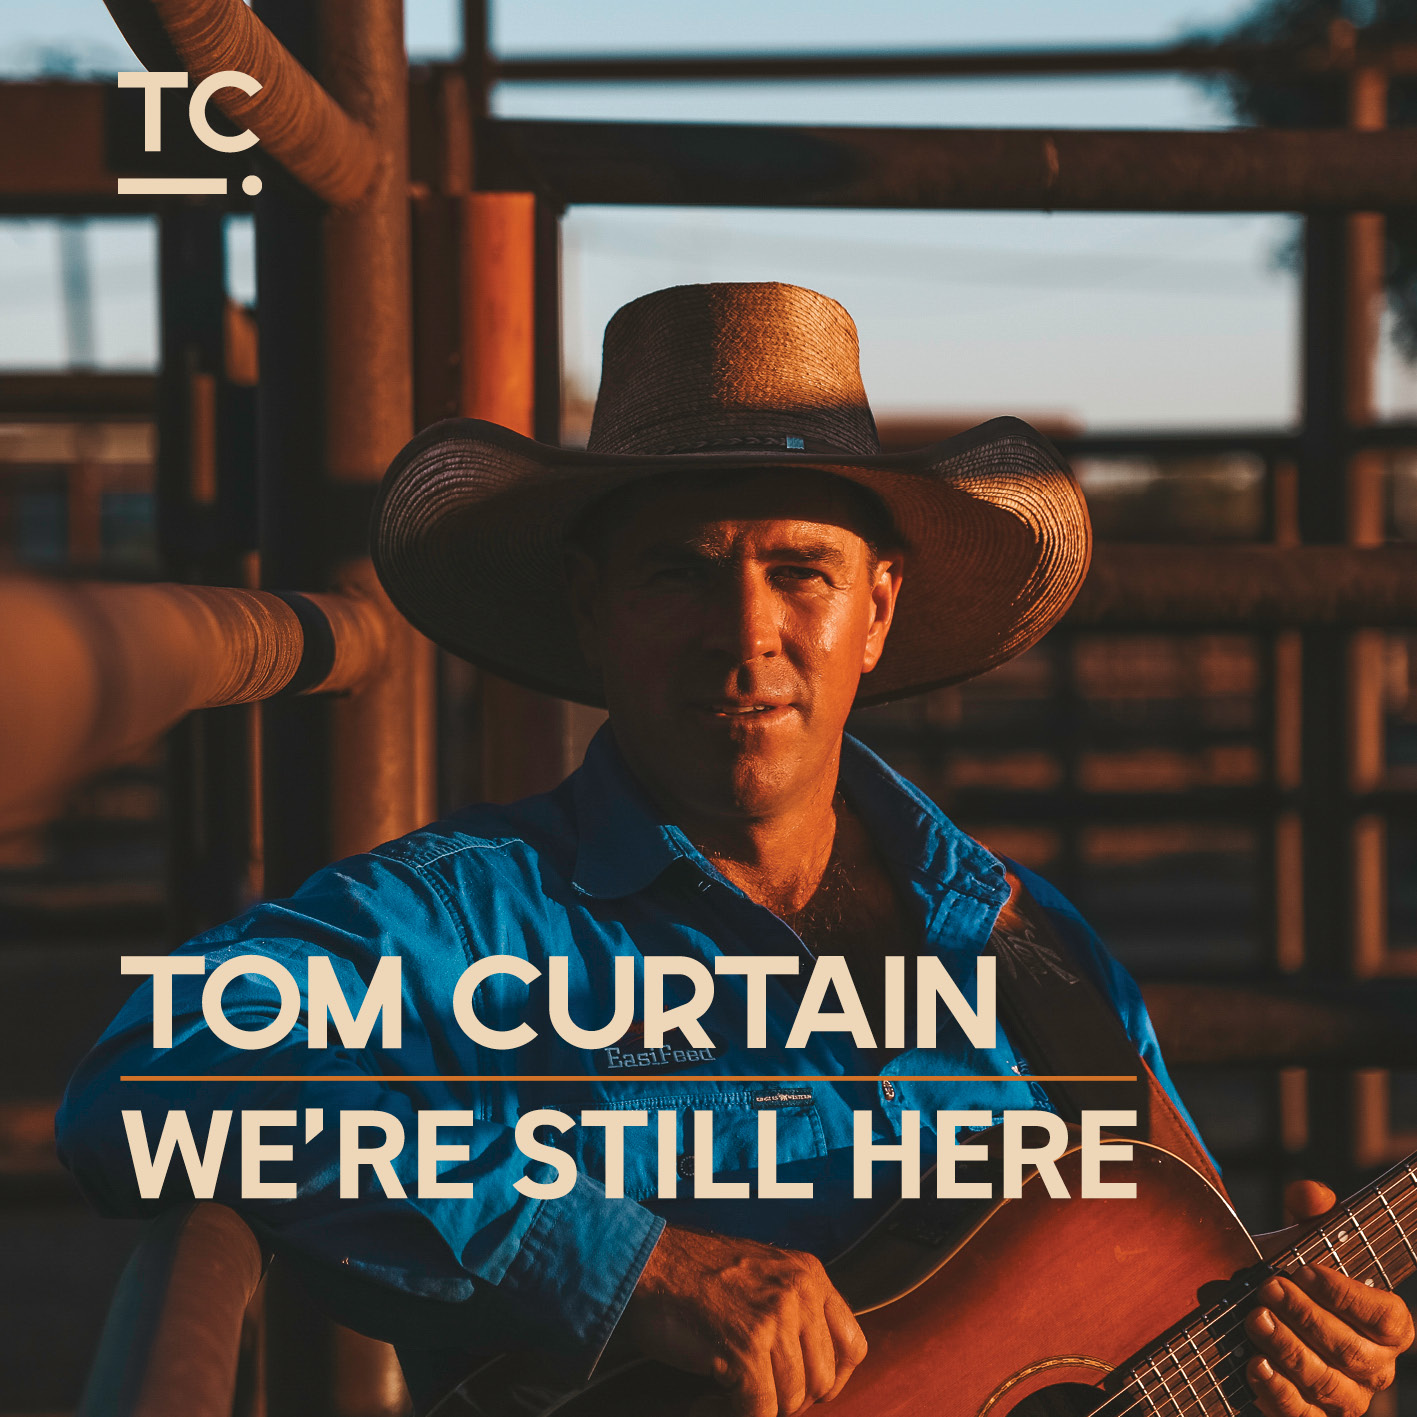 We're Still Here is Tom Curtain's fourth album produced by Garth Porter of Rancom St Studios